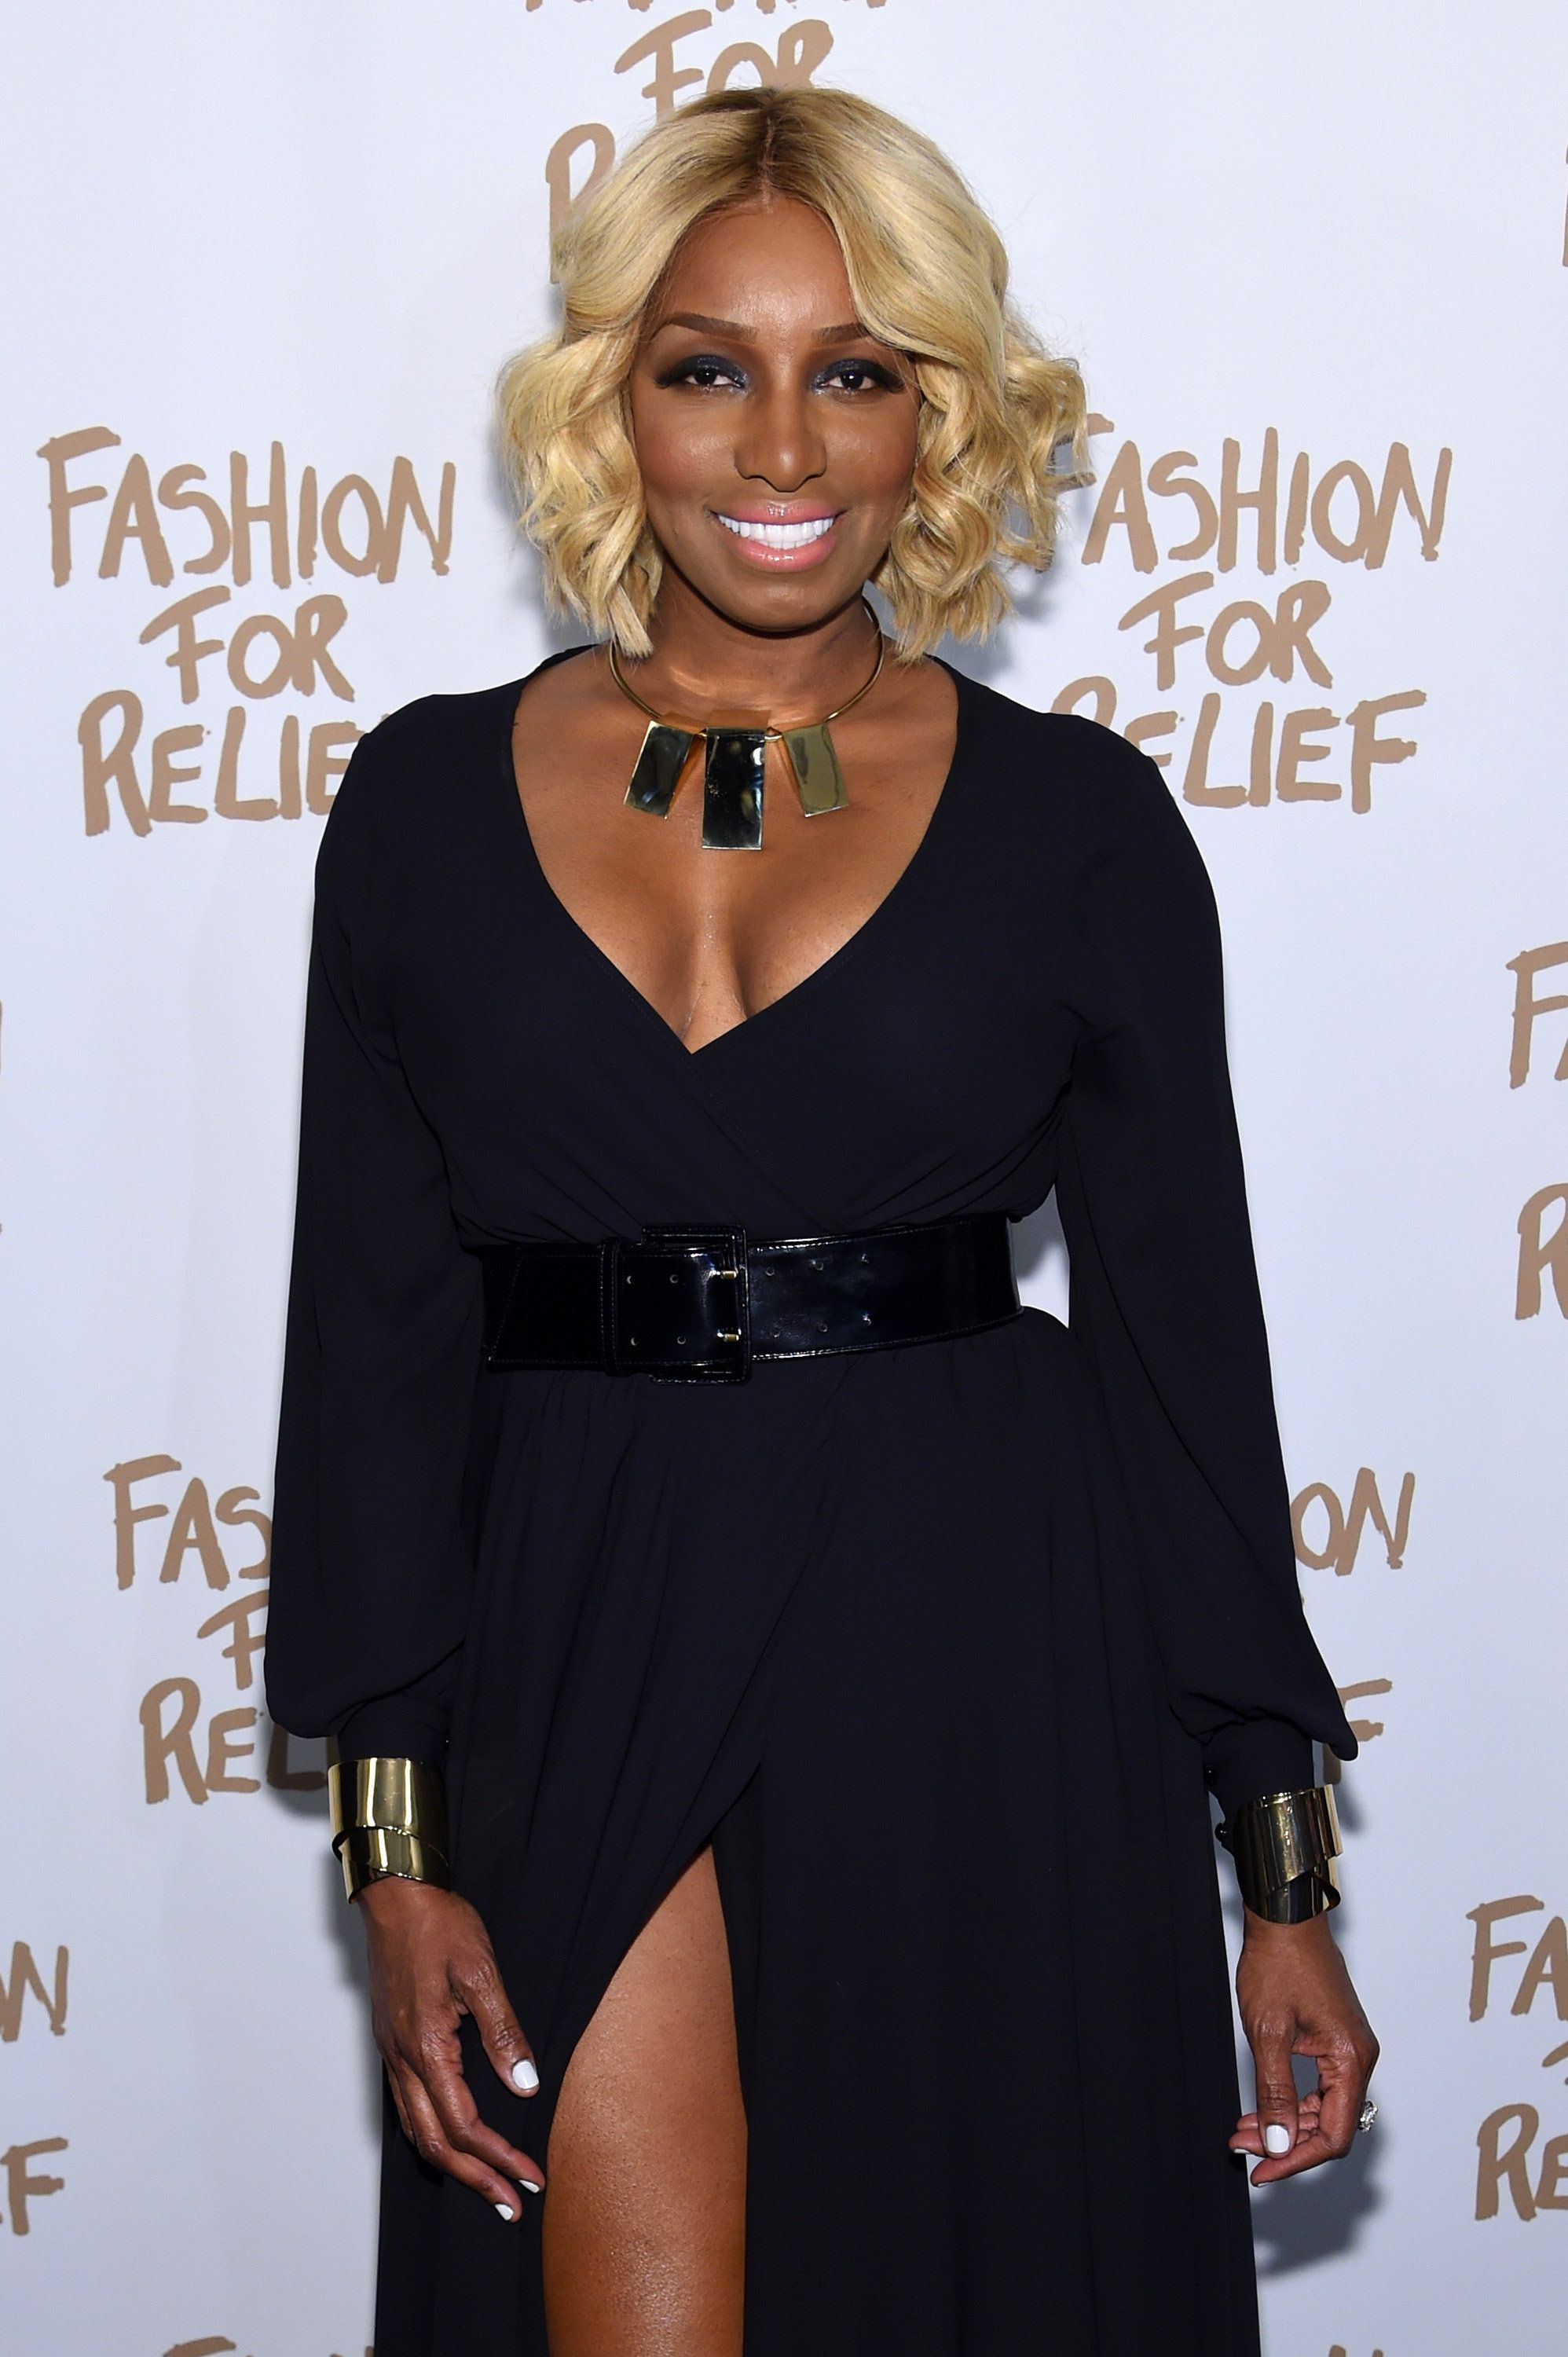 NEW YORK, NY - FEBRUARY 14:  NeNe Leakes attends Naomi Campbell's Fashion For Relief Charity Fashion Show during Mercedes-Benz Fashion Week Fall 2015 at The Theatre at Lincoln Center on February 14, 2015 in New York City.  (Photo by Jamie McCarthy/Getty Images For Fashion For Relief)